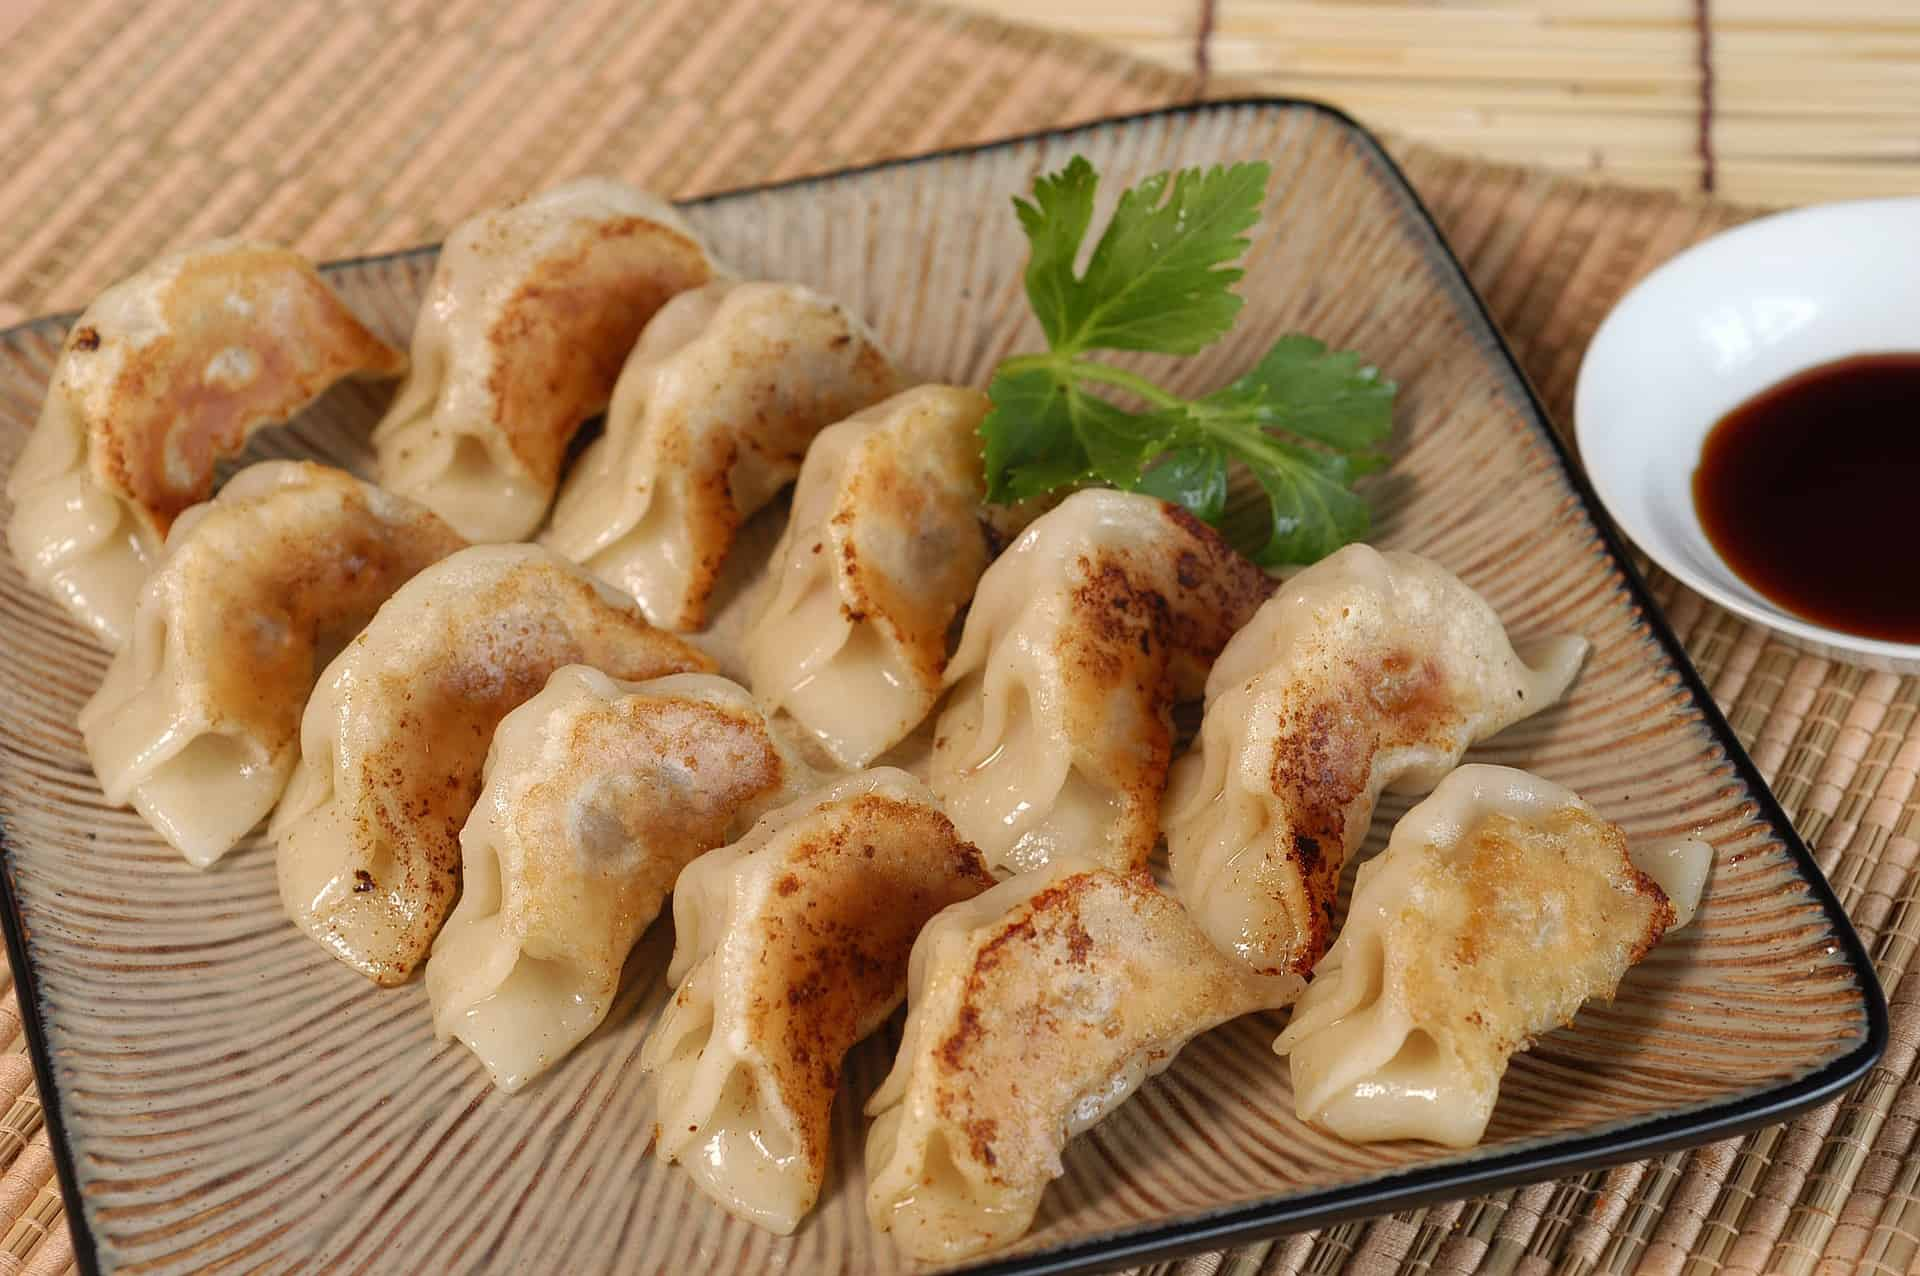 a plate of gyoza and its sauce